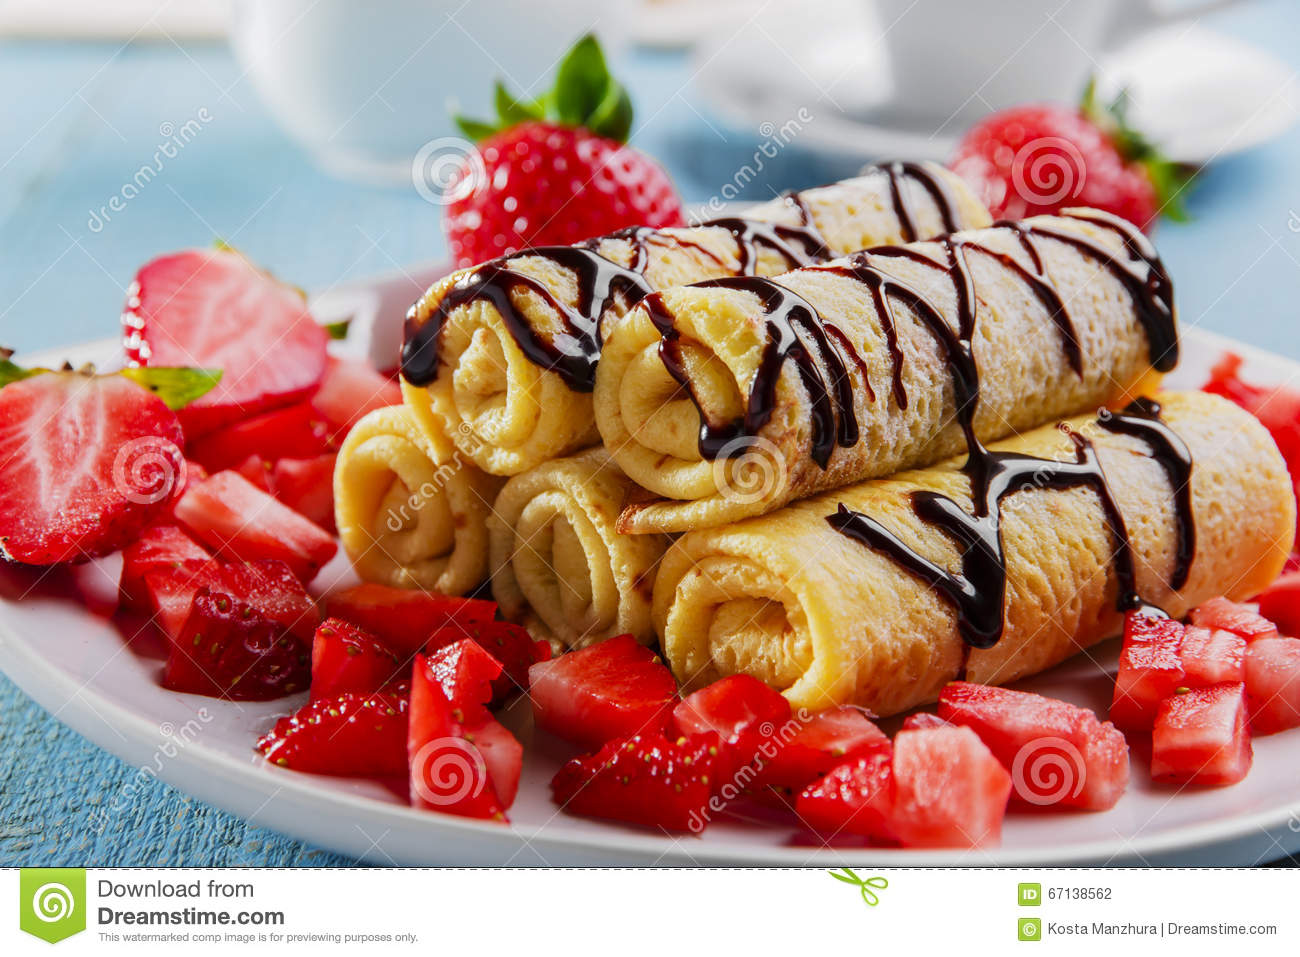 Rolled Pancakes With Strawberries And Chocolate Breakfast Stock Photo Image Of Bake Snack 67138562